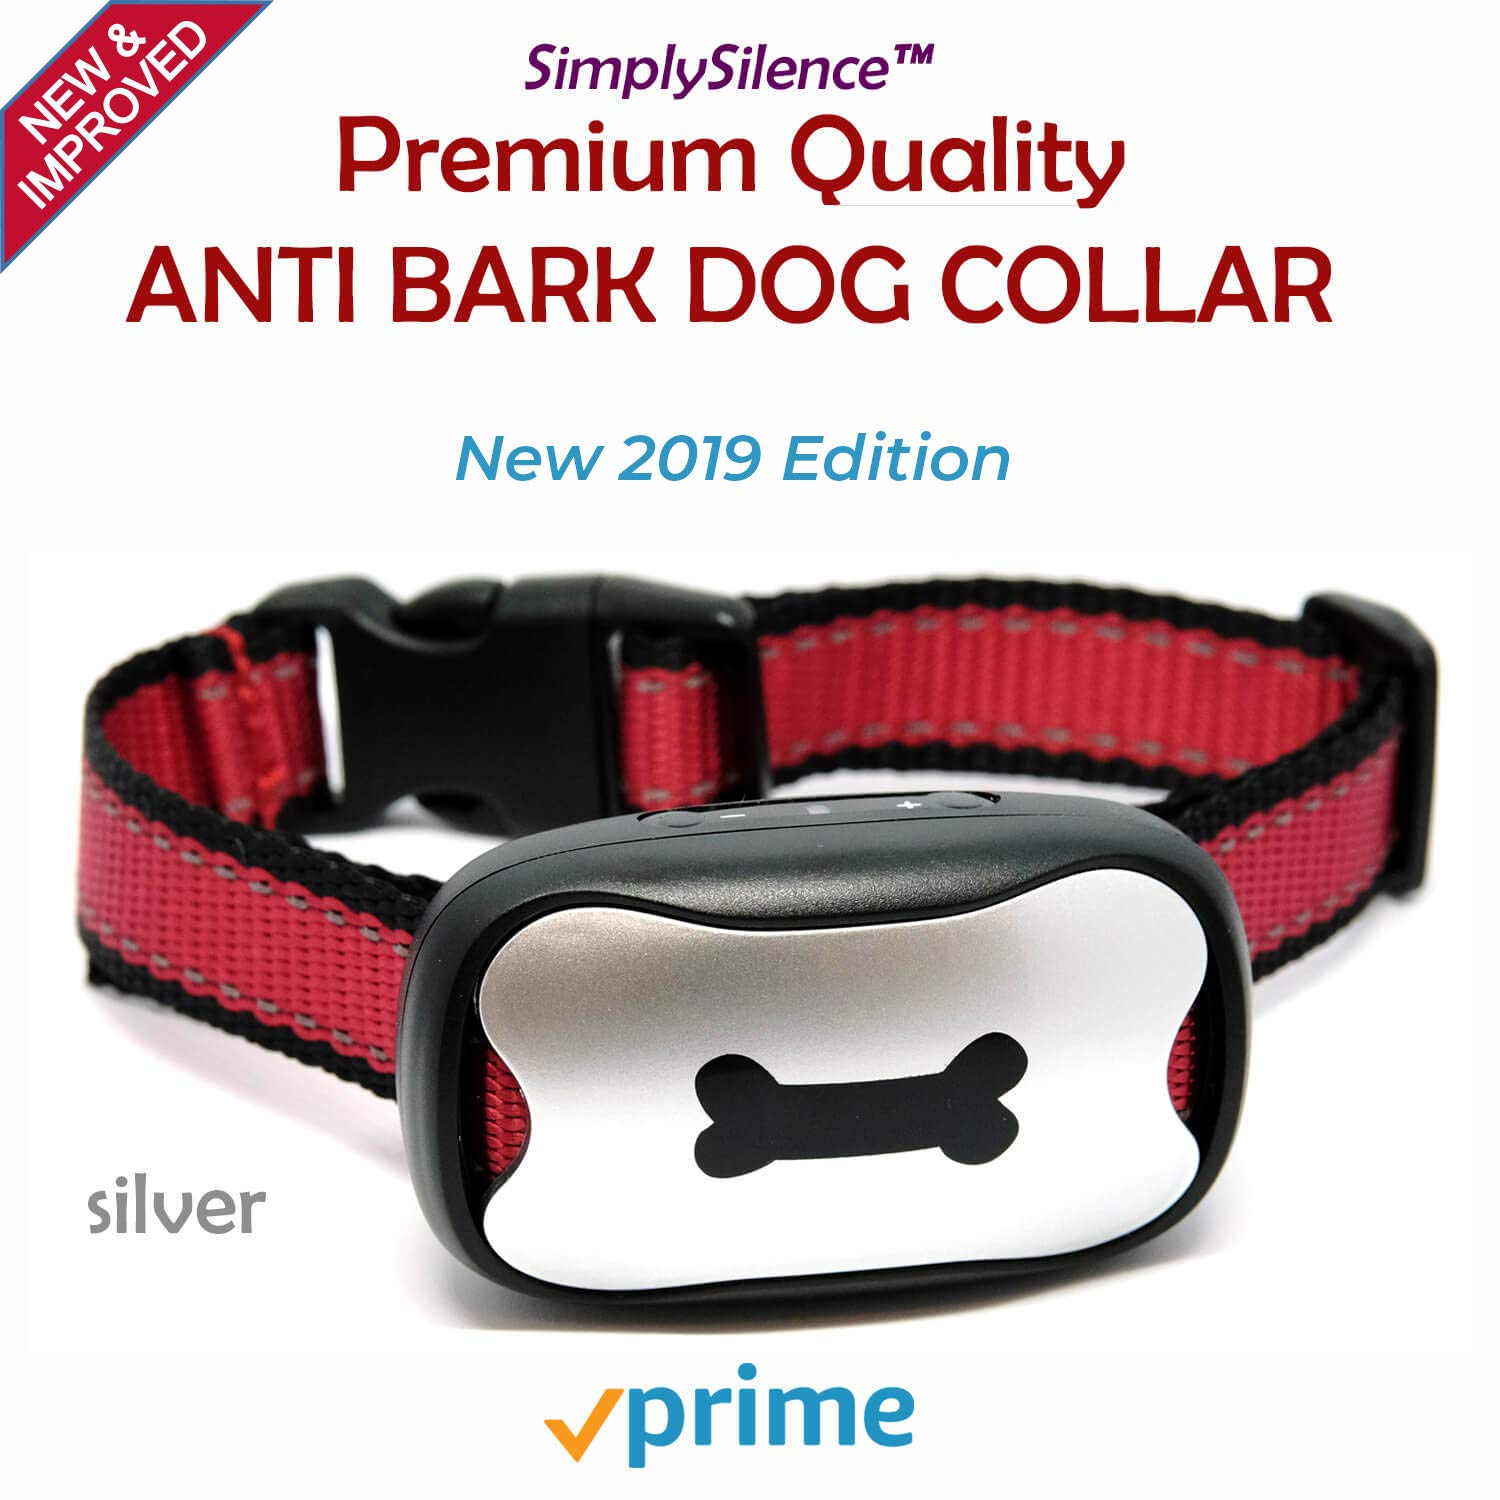 NEW Anti Barking Dog Collars   No Bark Humane & No Harm Device  STOP Bark Collar Sound & Vibration, No Shock 7 Sensitivity Levels Training For Small, Medium & Large Dogs   Water Resistant (Silver&Red)